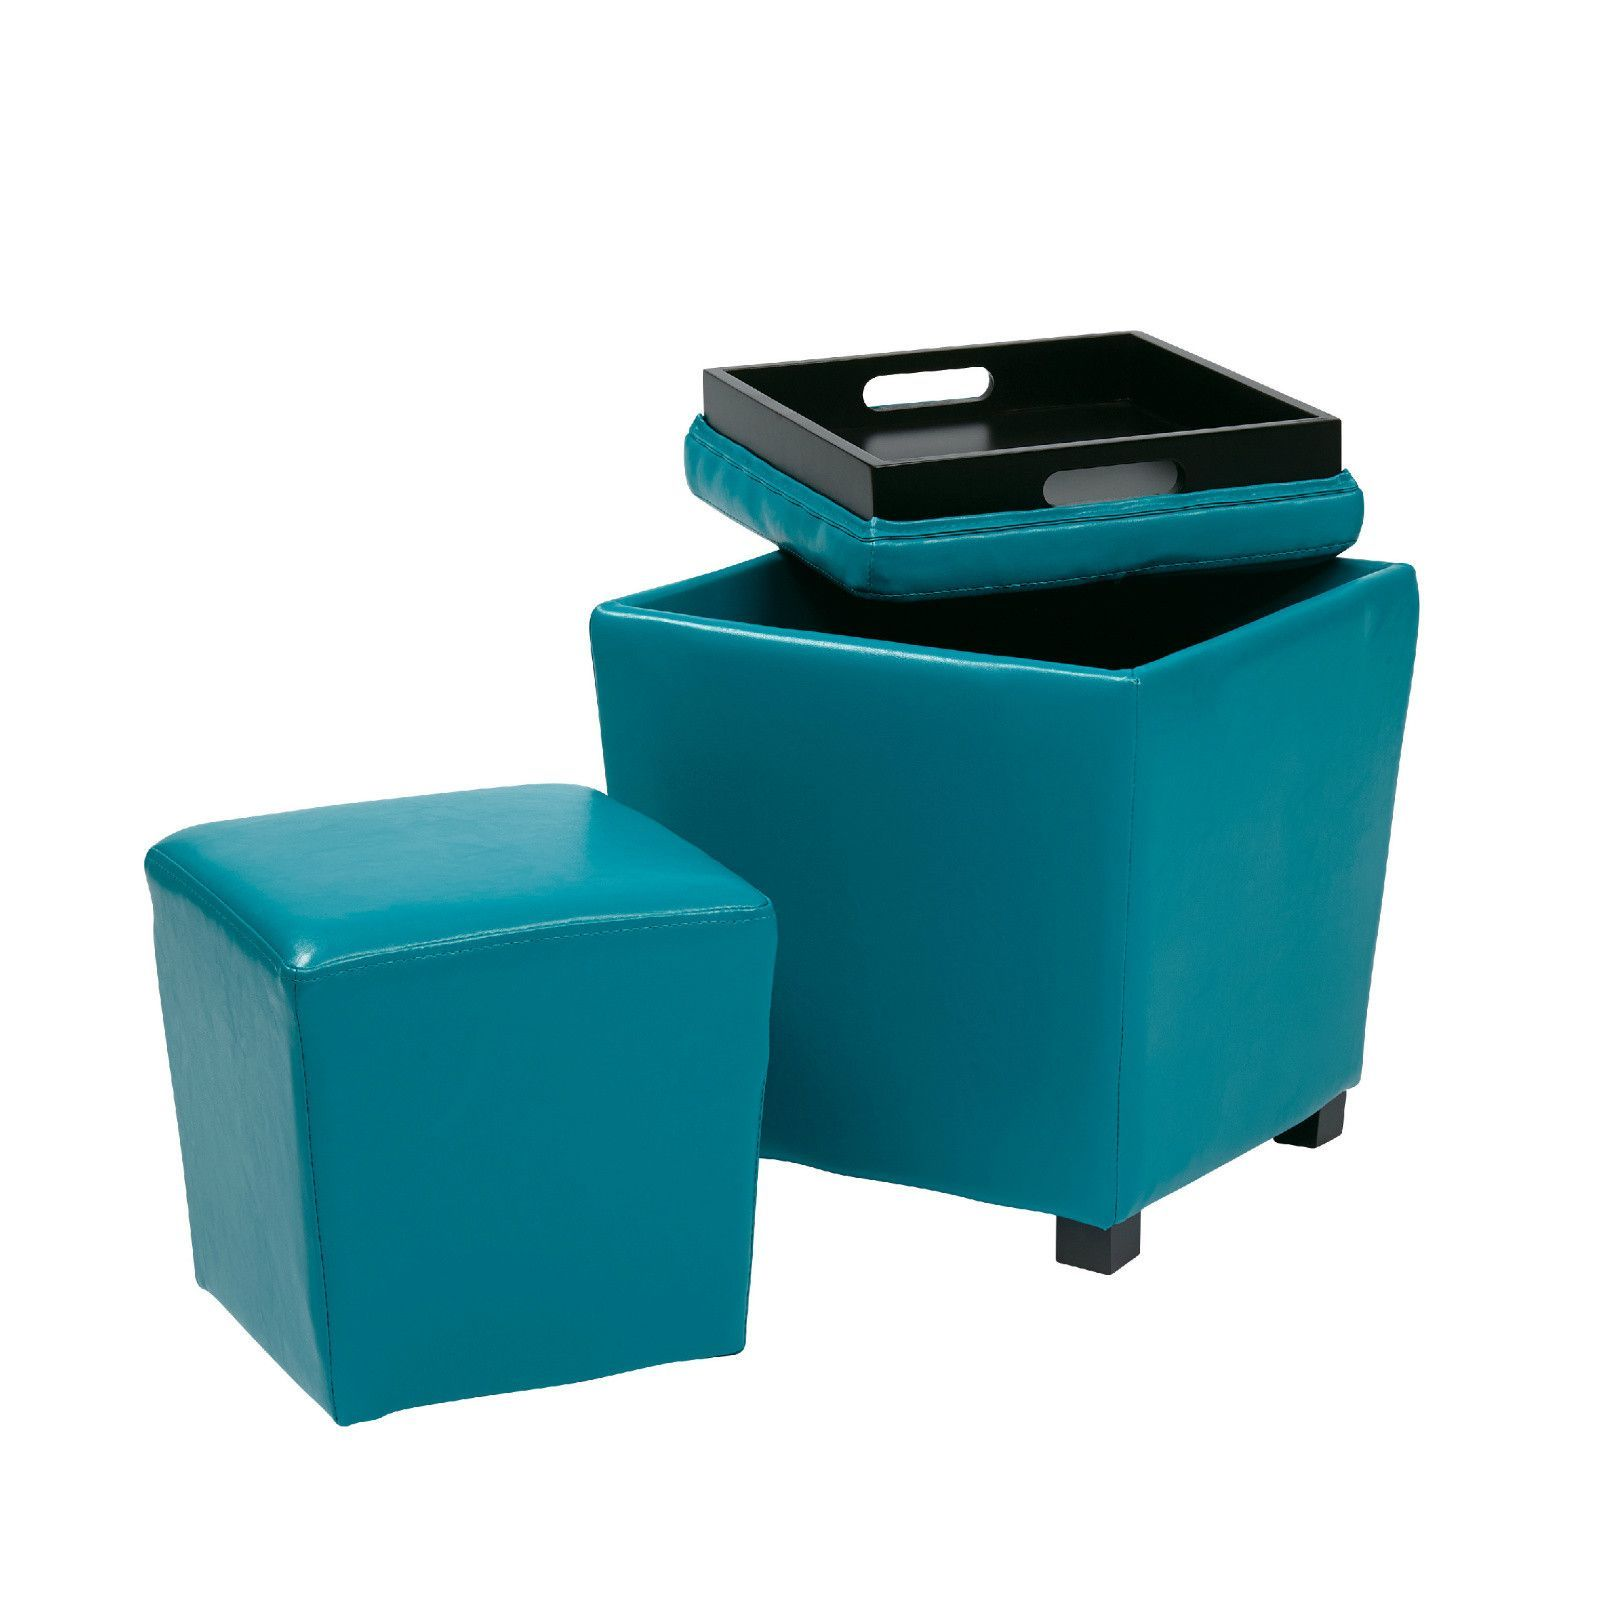 Remarkable Ottoman With Storage And Tray Set In 2019 Storage Spaces Alphanode Cool Chair Designs And Ideas Alphanodeonline